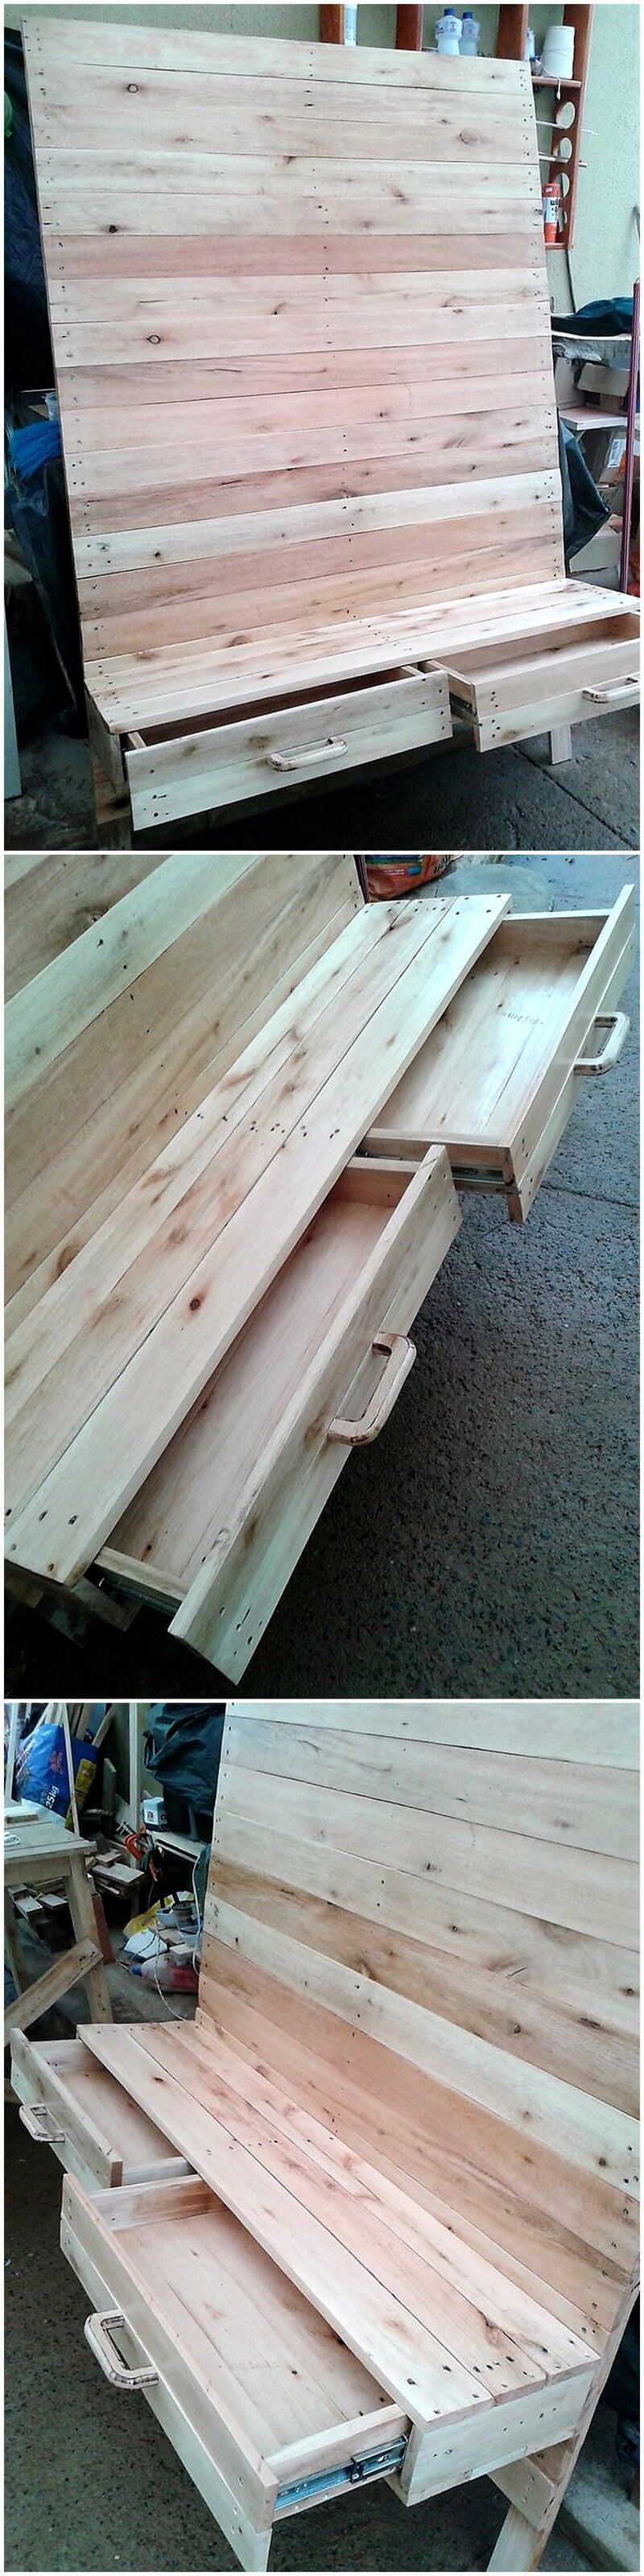 pallets wooden LED Stand idea